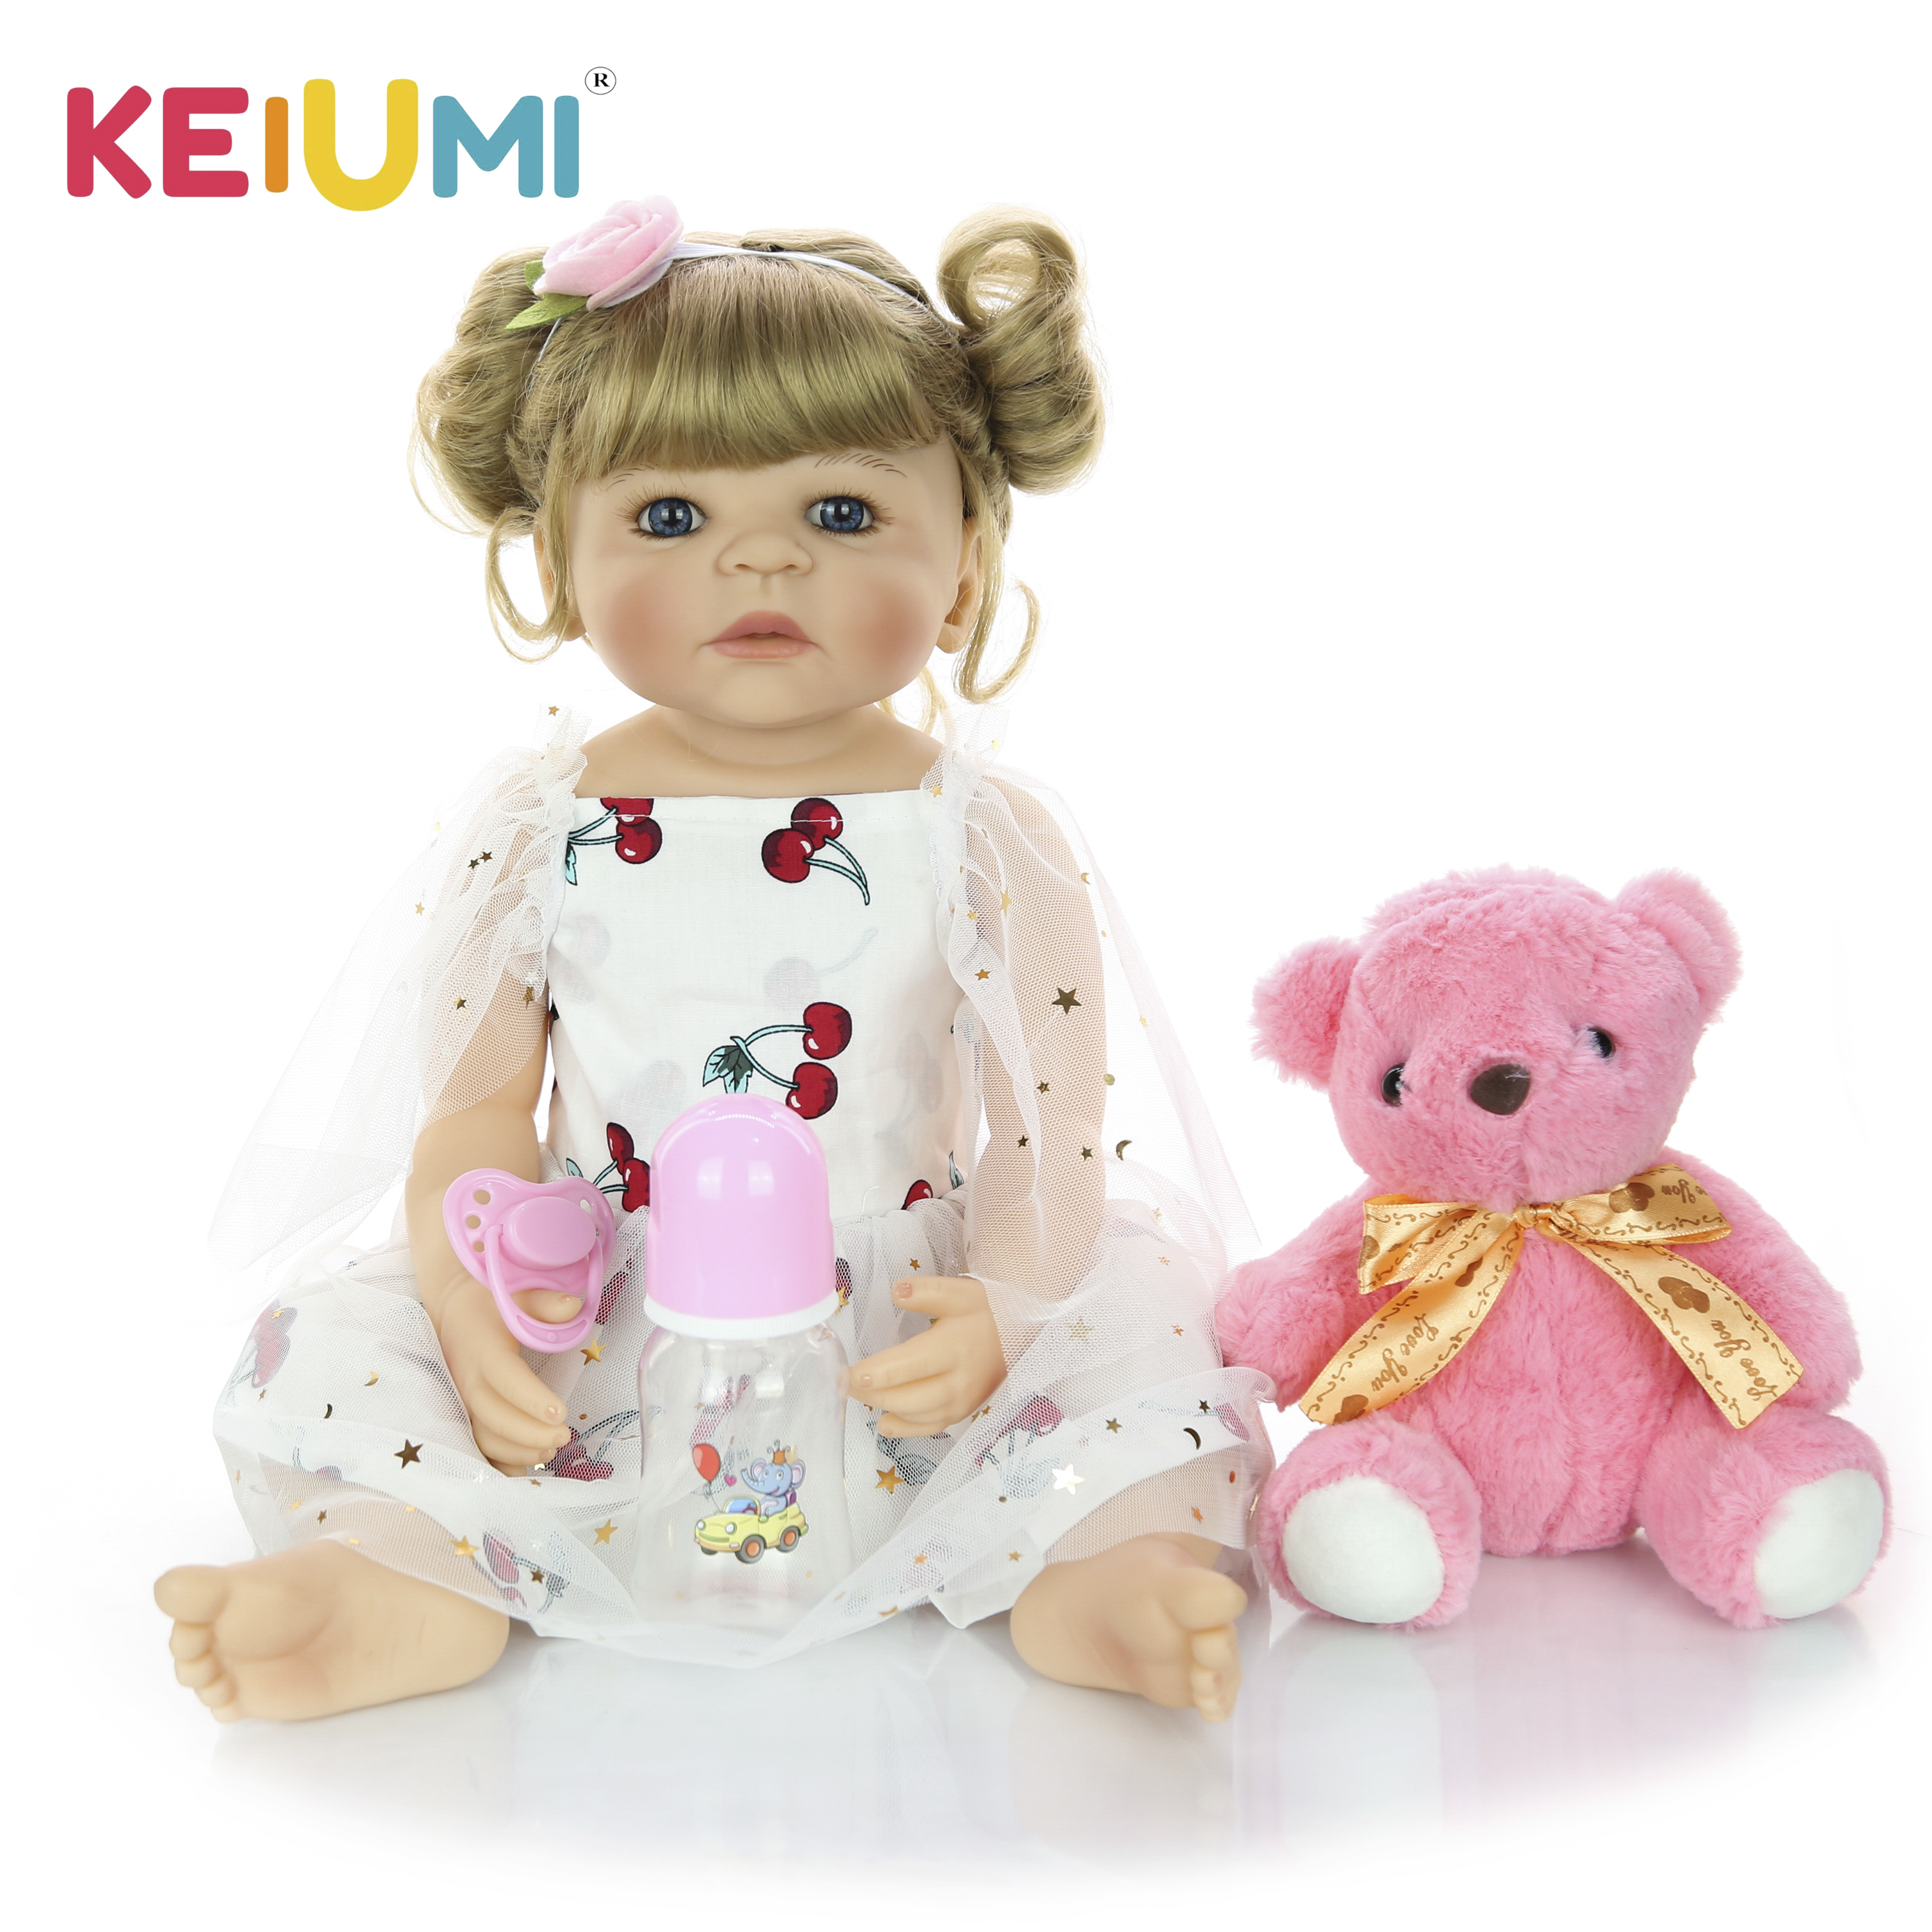 New Style 22 55 cm Baby Reborn Girl Doll Silicone Full Body Realistic Princess Babies Dolls